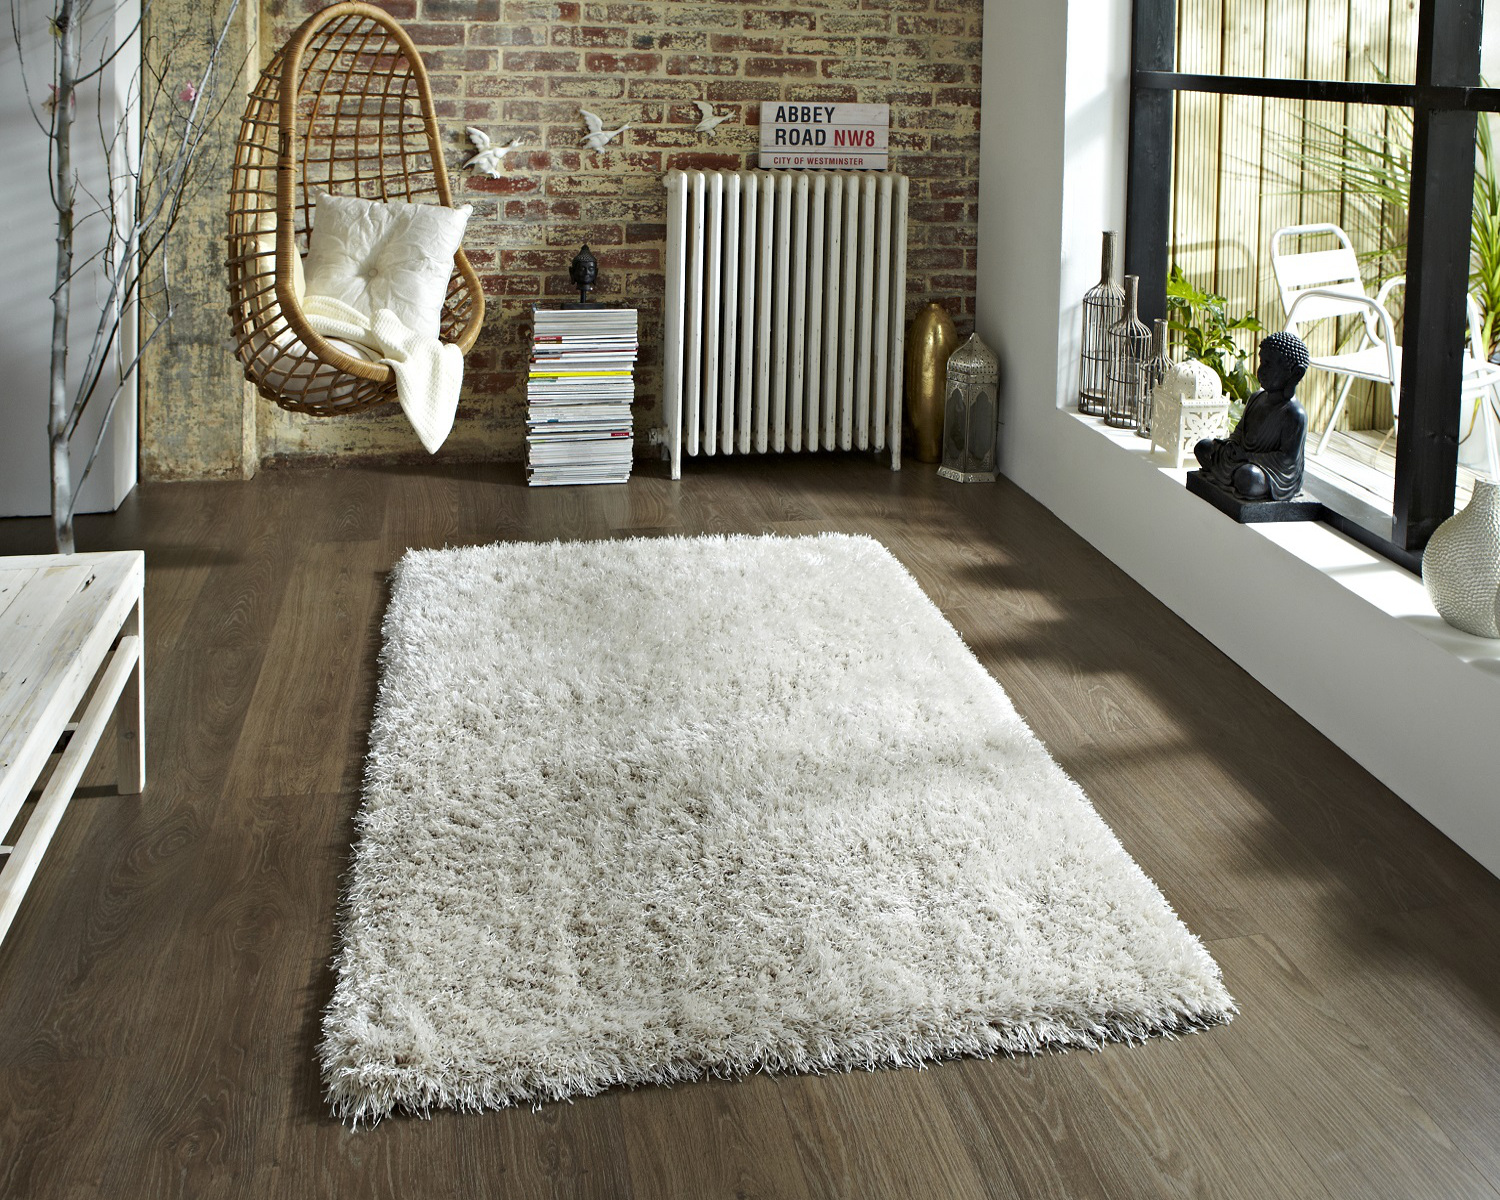 Super Soft Monte Carlo Shaggy Pile Rug Hand Tufted Floor Mat Large